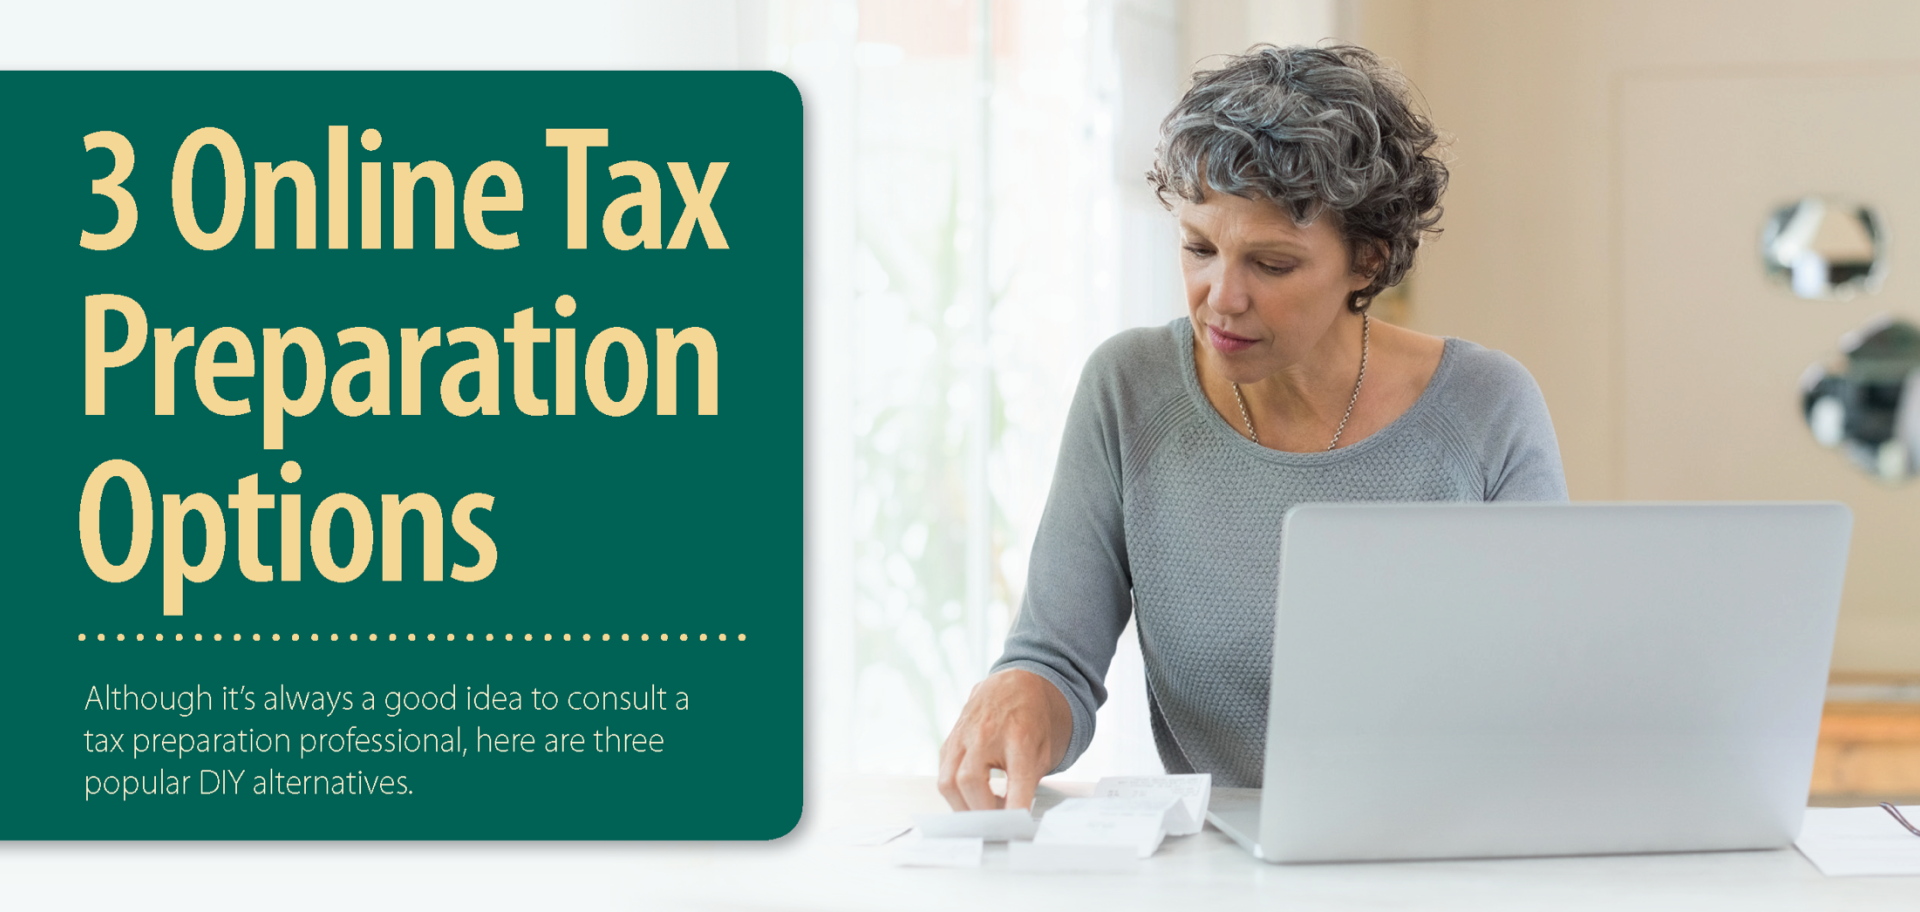 3 Online Tax Preparation Options